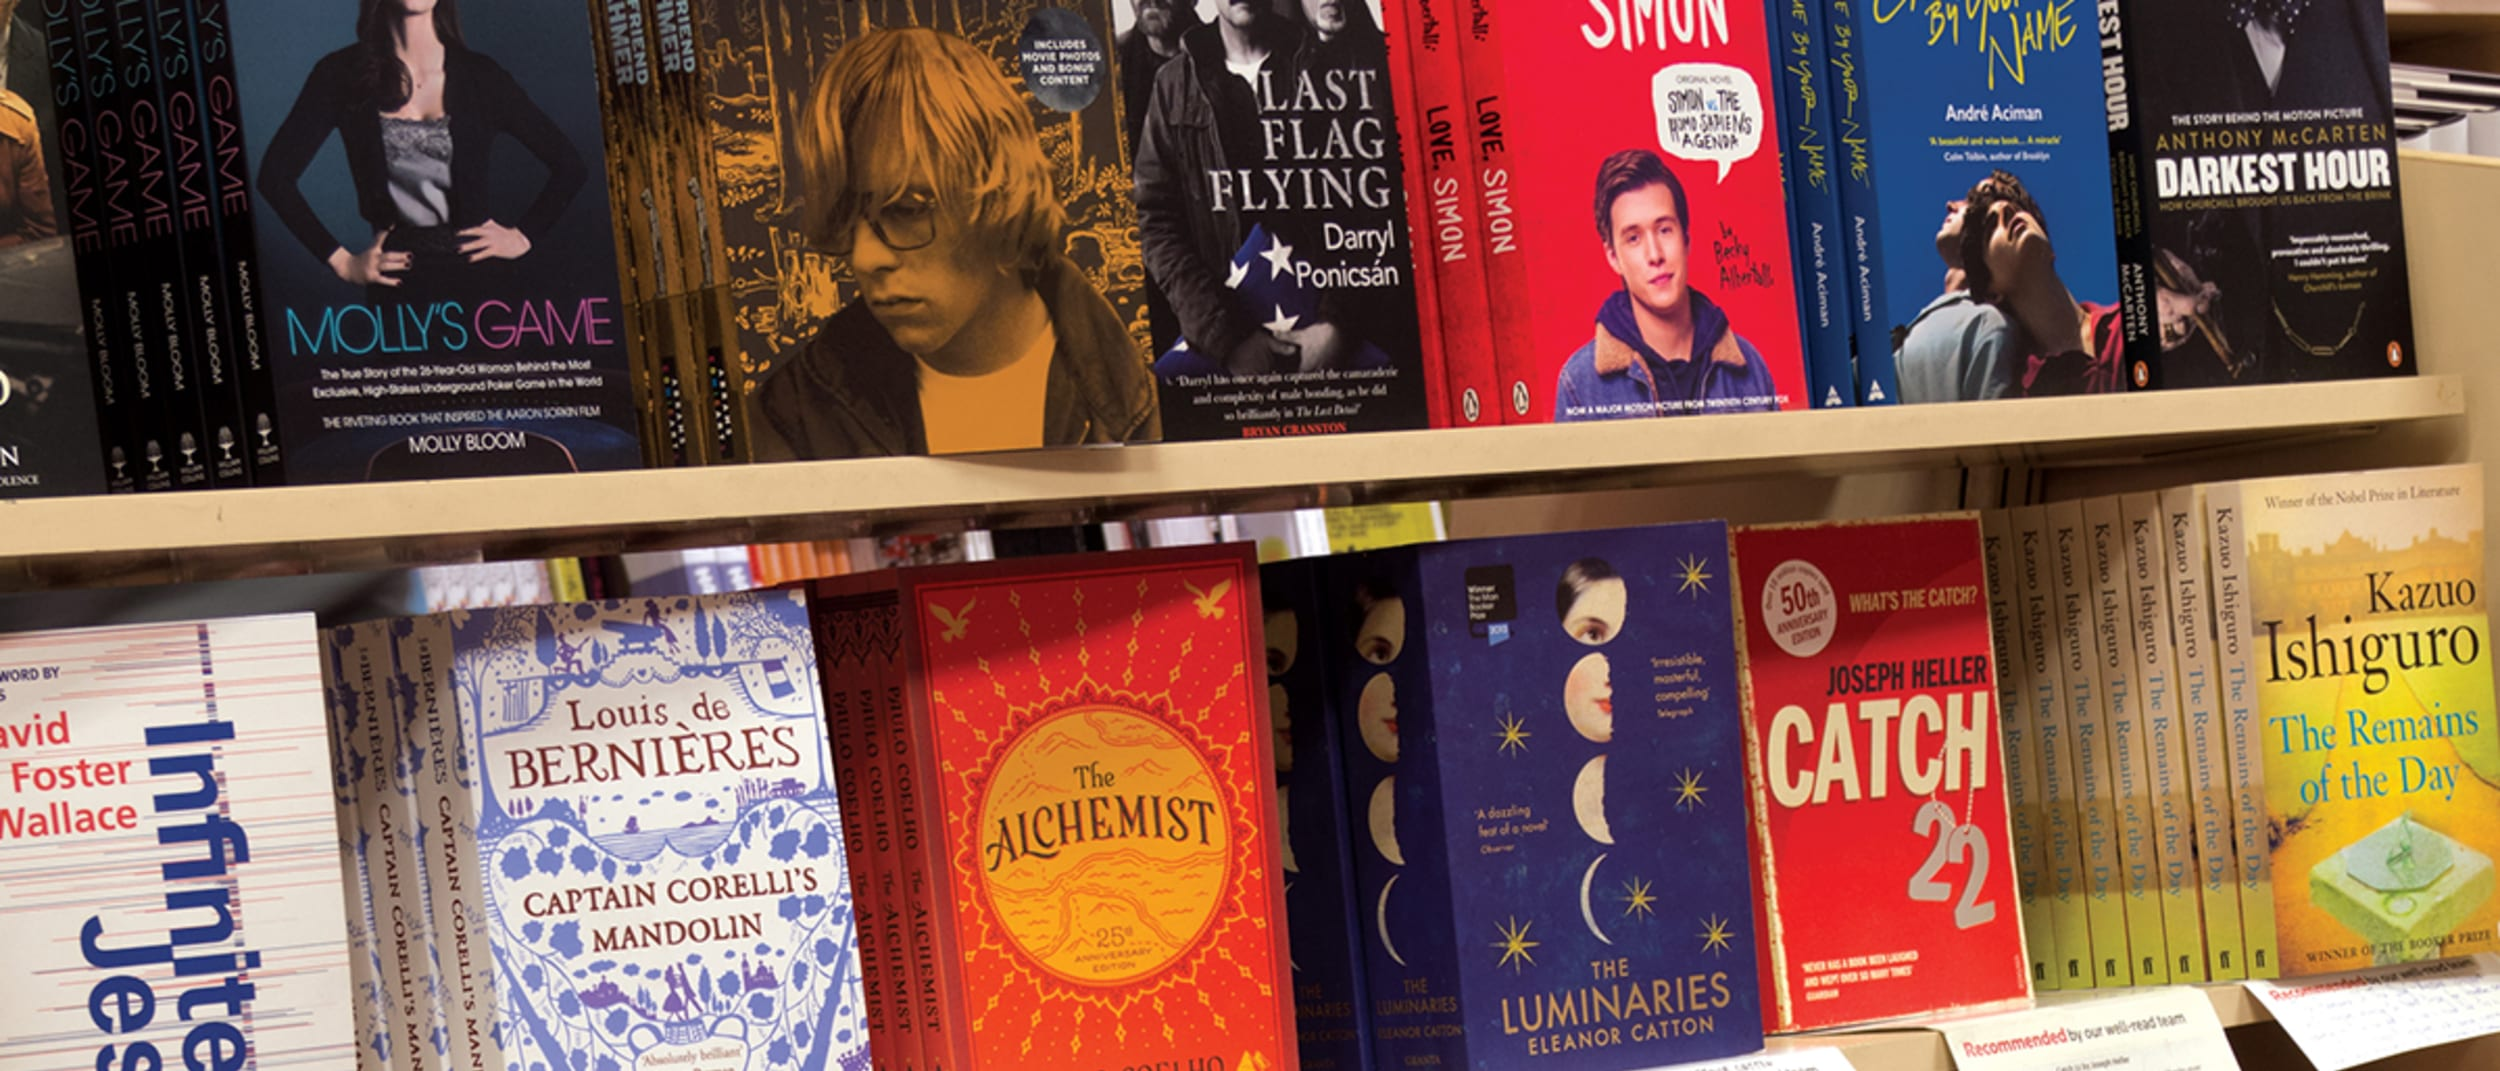 Dymocks: 3 for the price of 2 on selected Australian titles